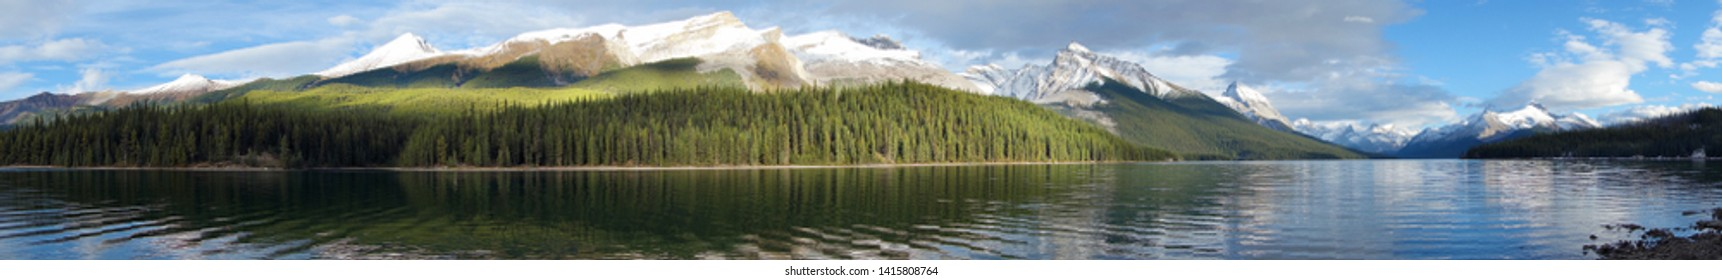 Maligne lake, Jasper national park, Canada, panoramic view